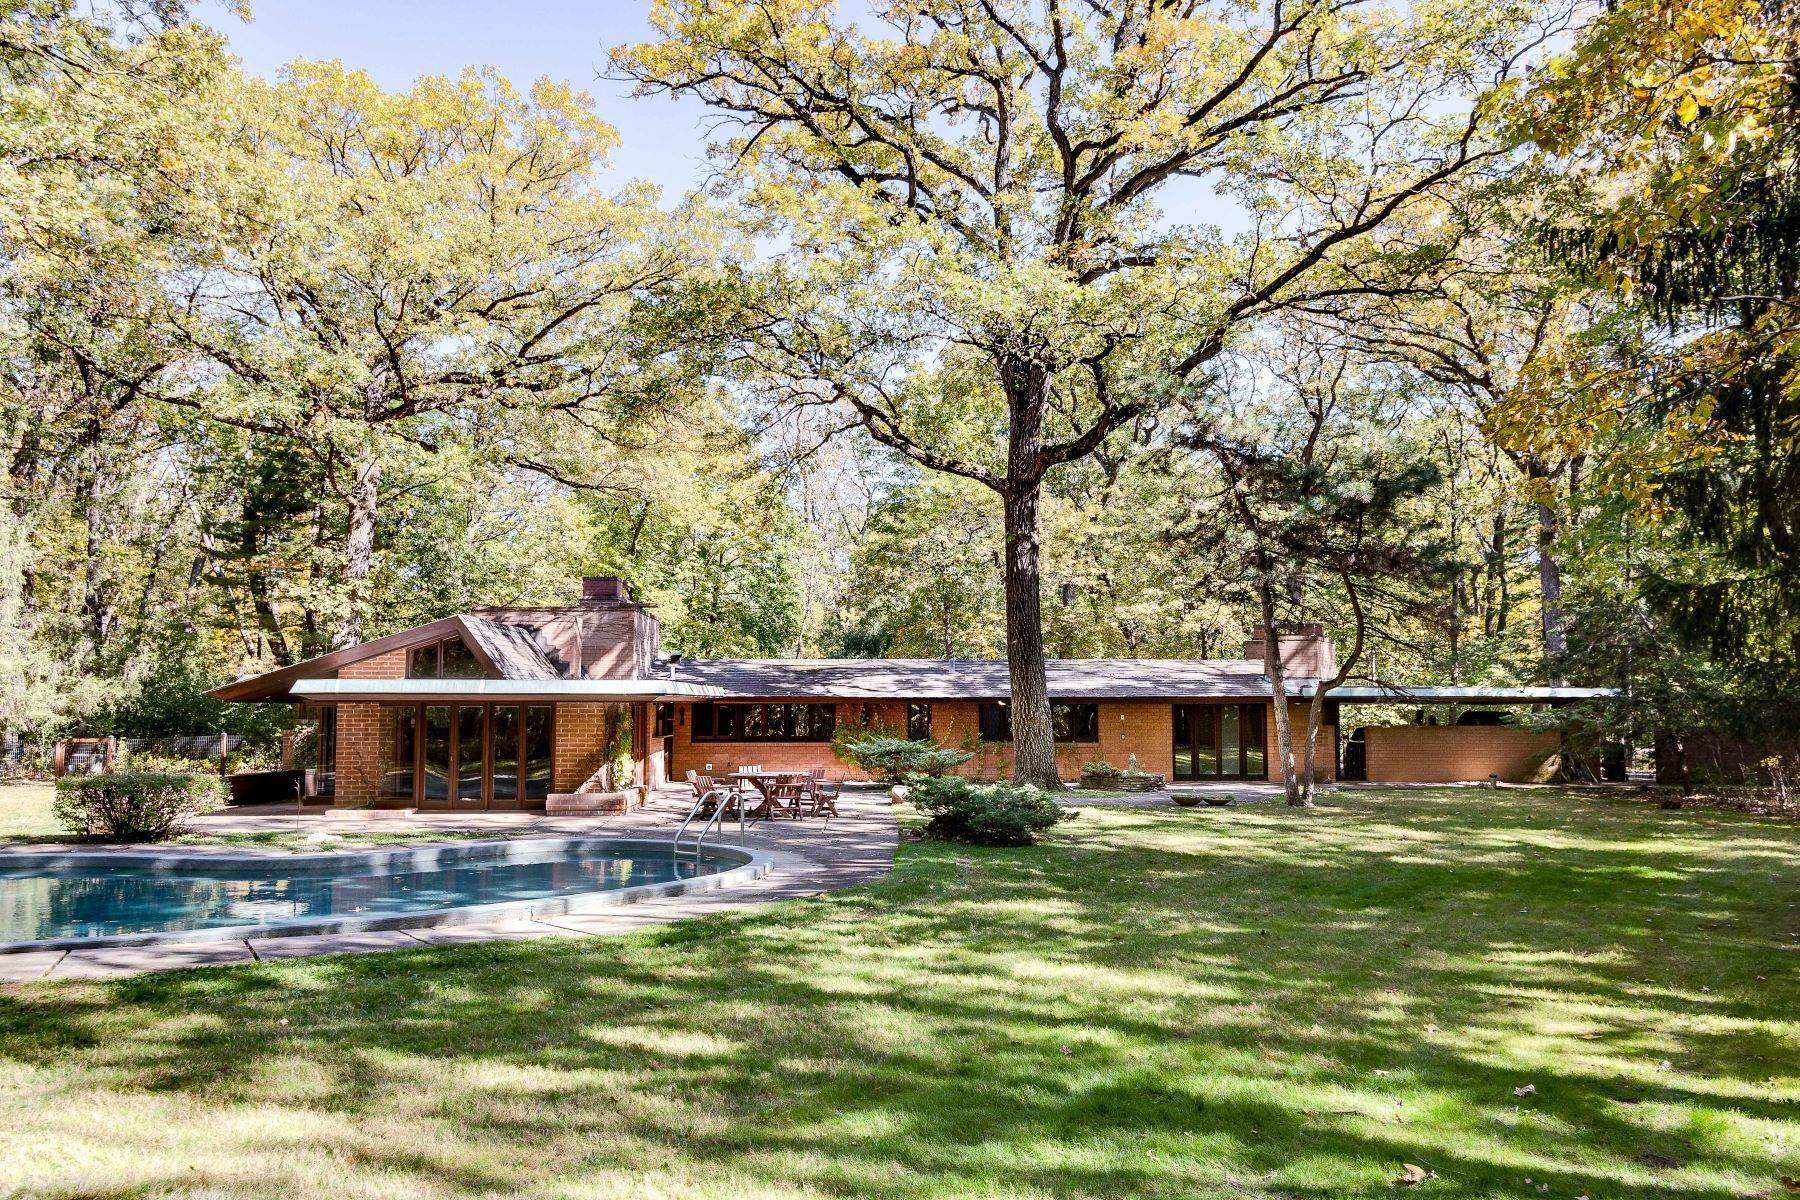 Property for Sale at Glenview's Only Frank Lloyd Wright Designed Home 1544 Portage Run Glenview, Illinois 60025 United States